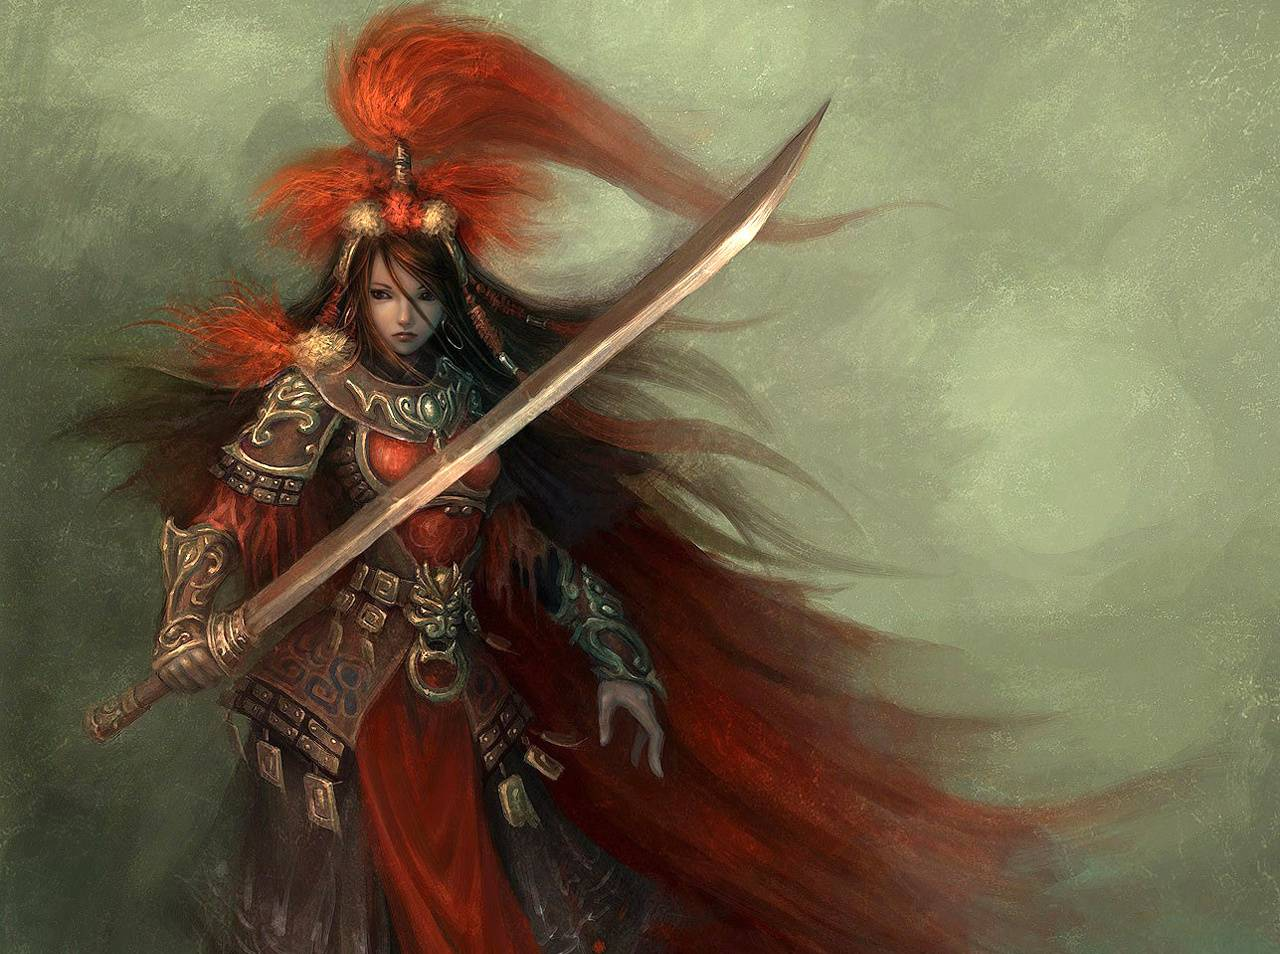 Anime Female Warrior